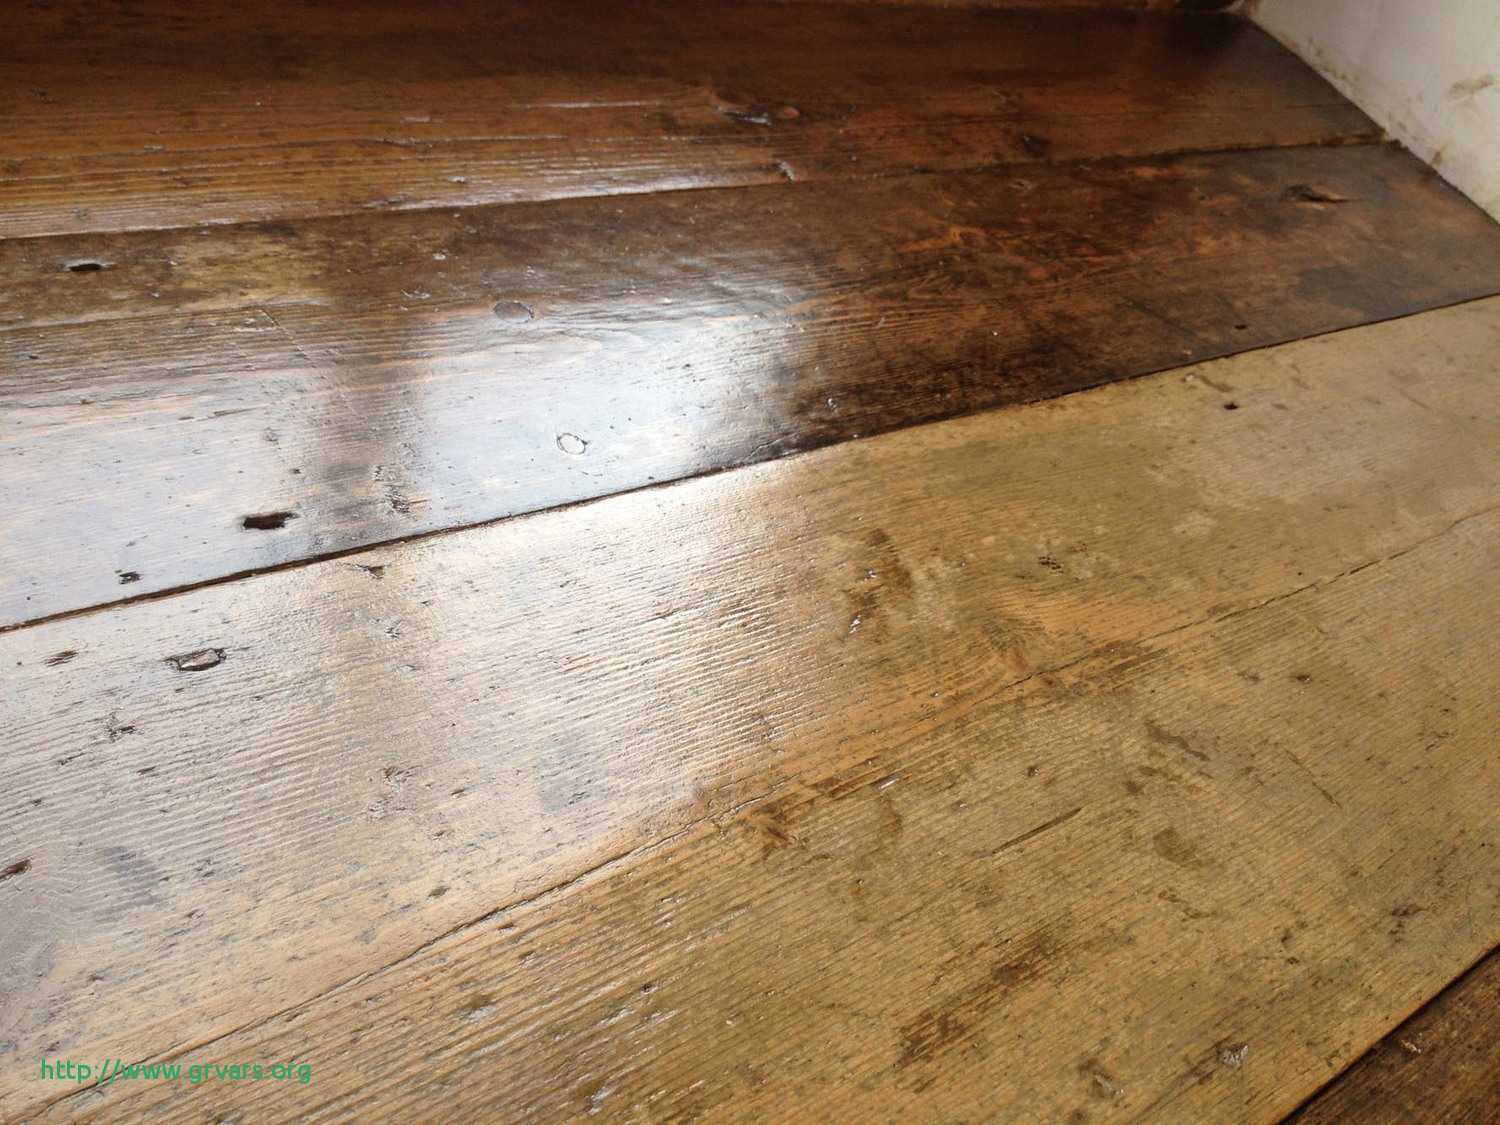 Cheap Hardwood Flooring Glasgow Of 15 A‰lagant solid Wood Flooring Scotland Ideas Blog Intended for Contemporary Engineered Wood Flooring Victorian Reclaimed Pine 4